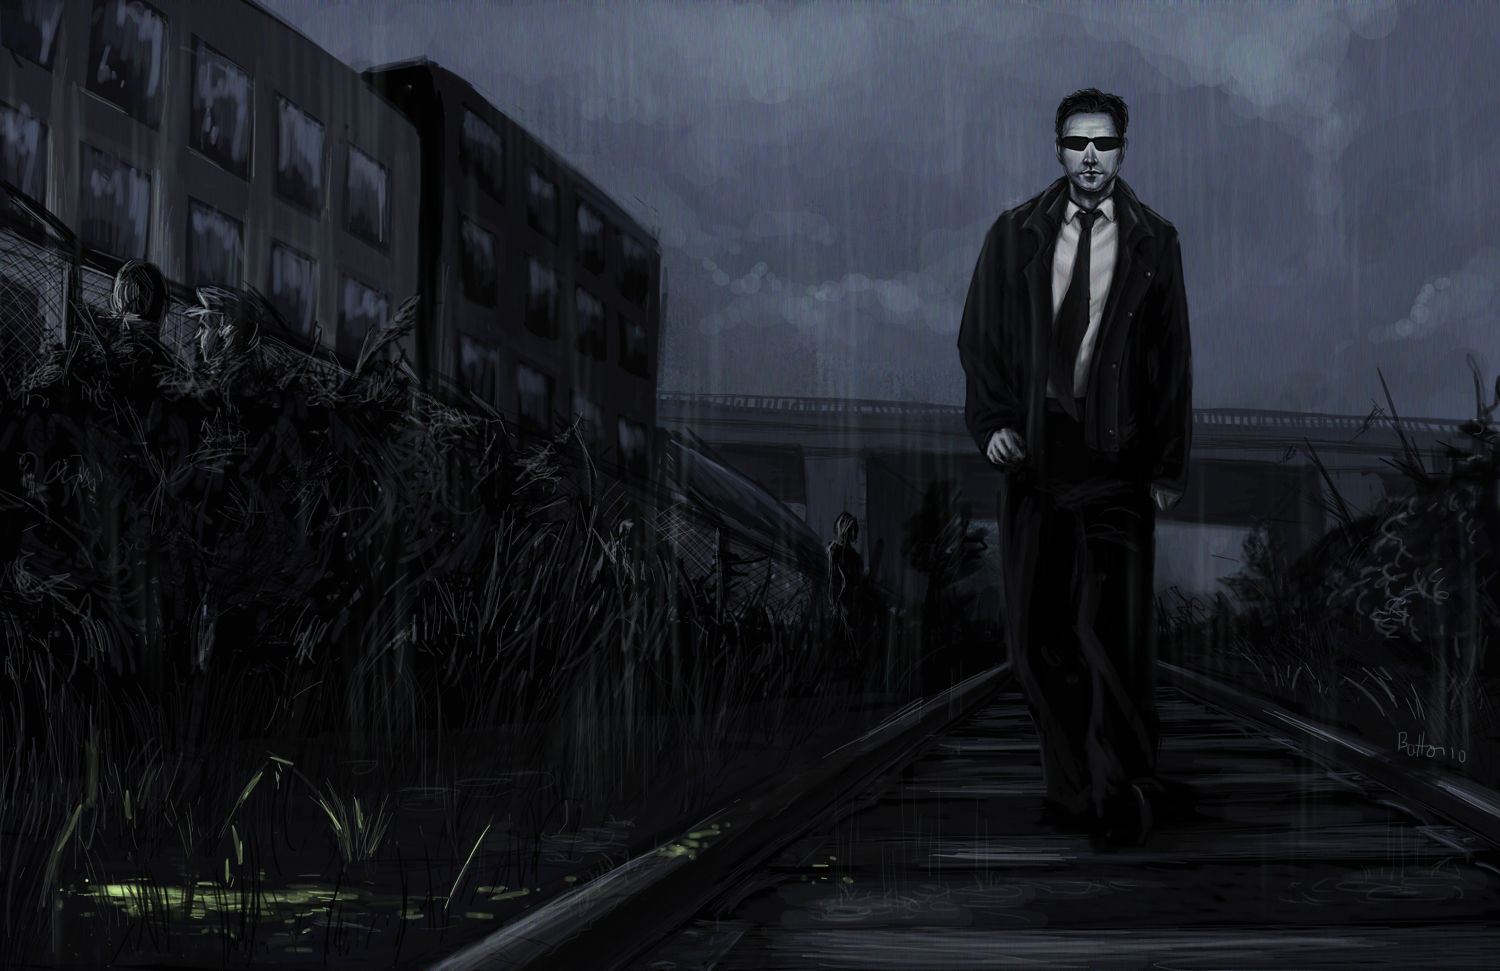 fanart heavy rain by HD Wallpaper